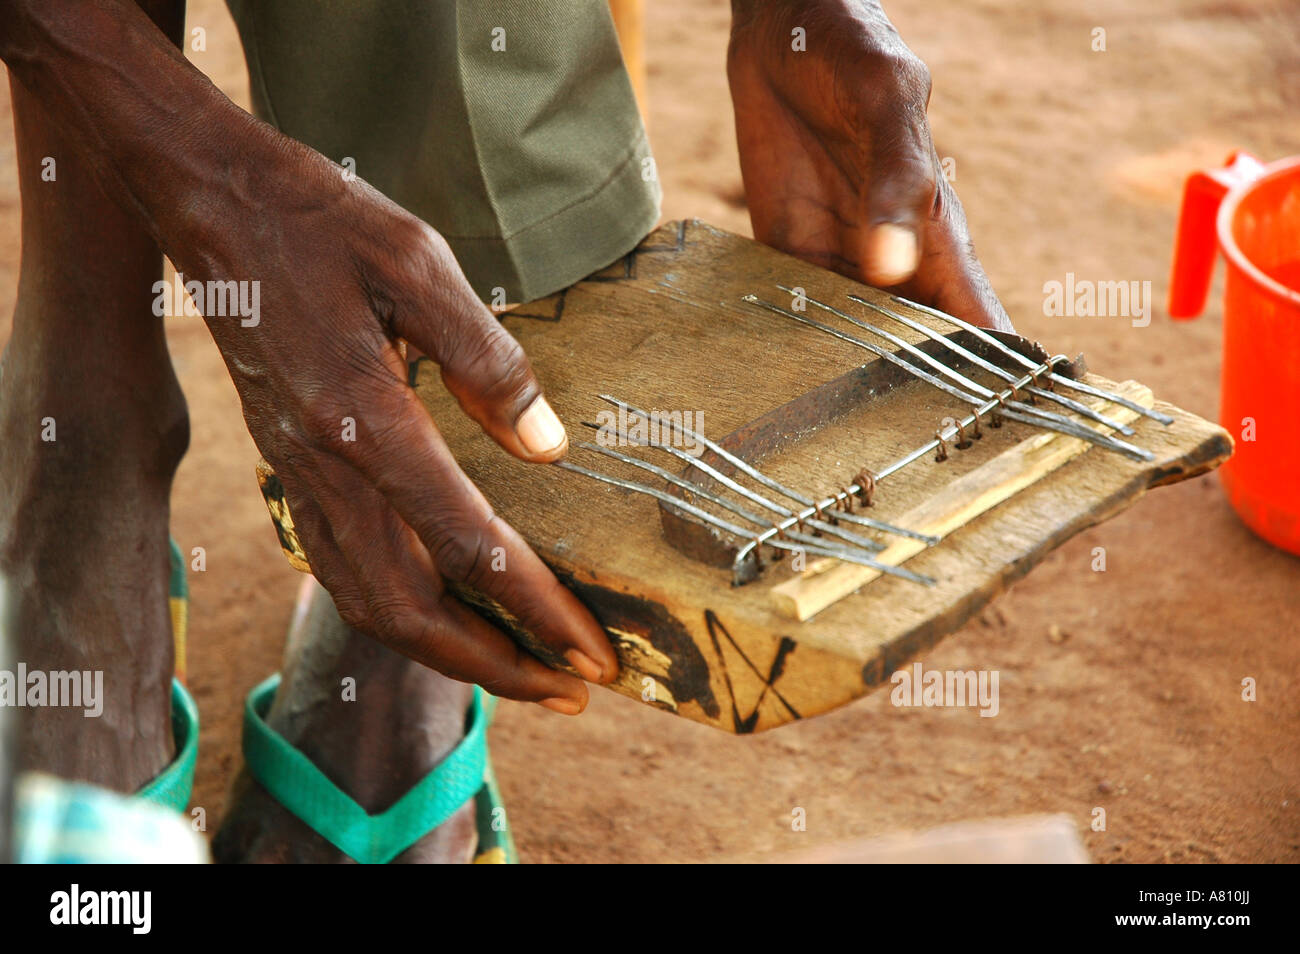 Mbira or thumb piano, a traditional African instrument. - Stock Image